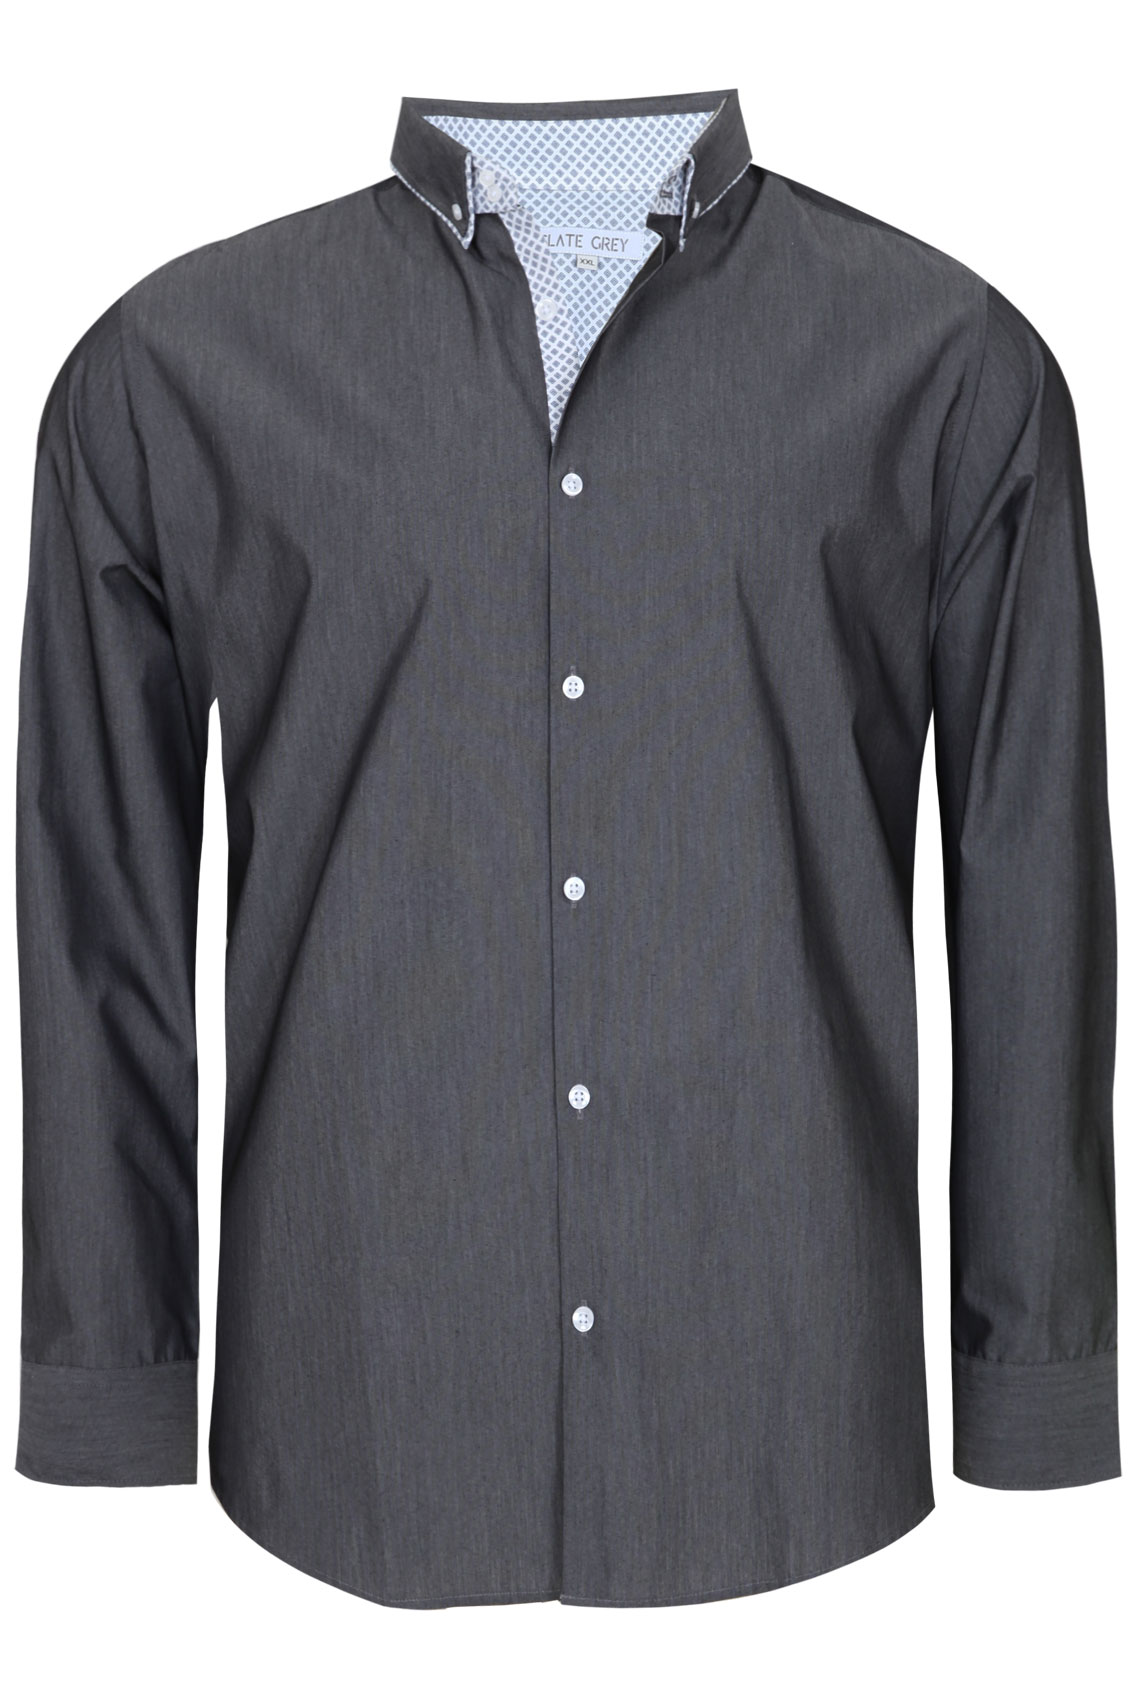 Grey Dark Grey Formal Long Sleeve Shirt - TALL